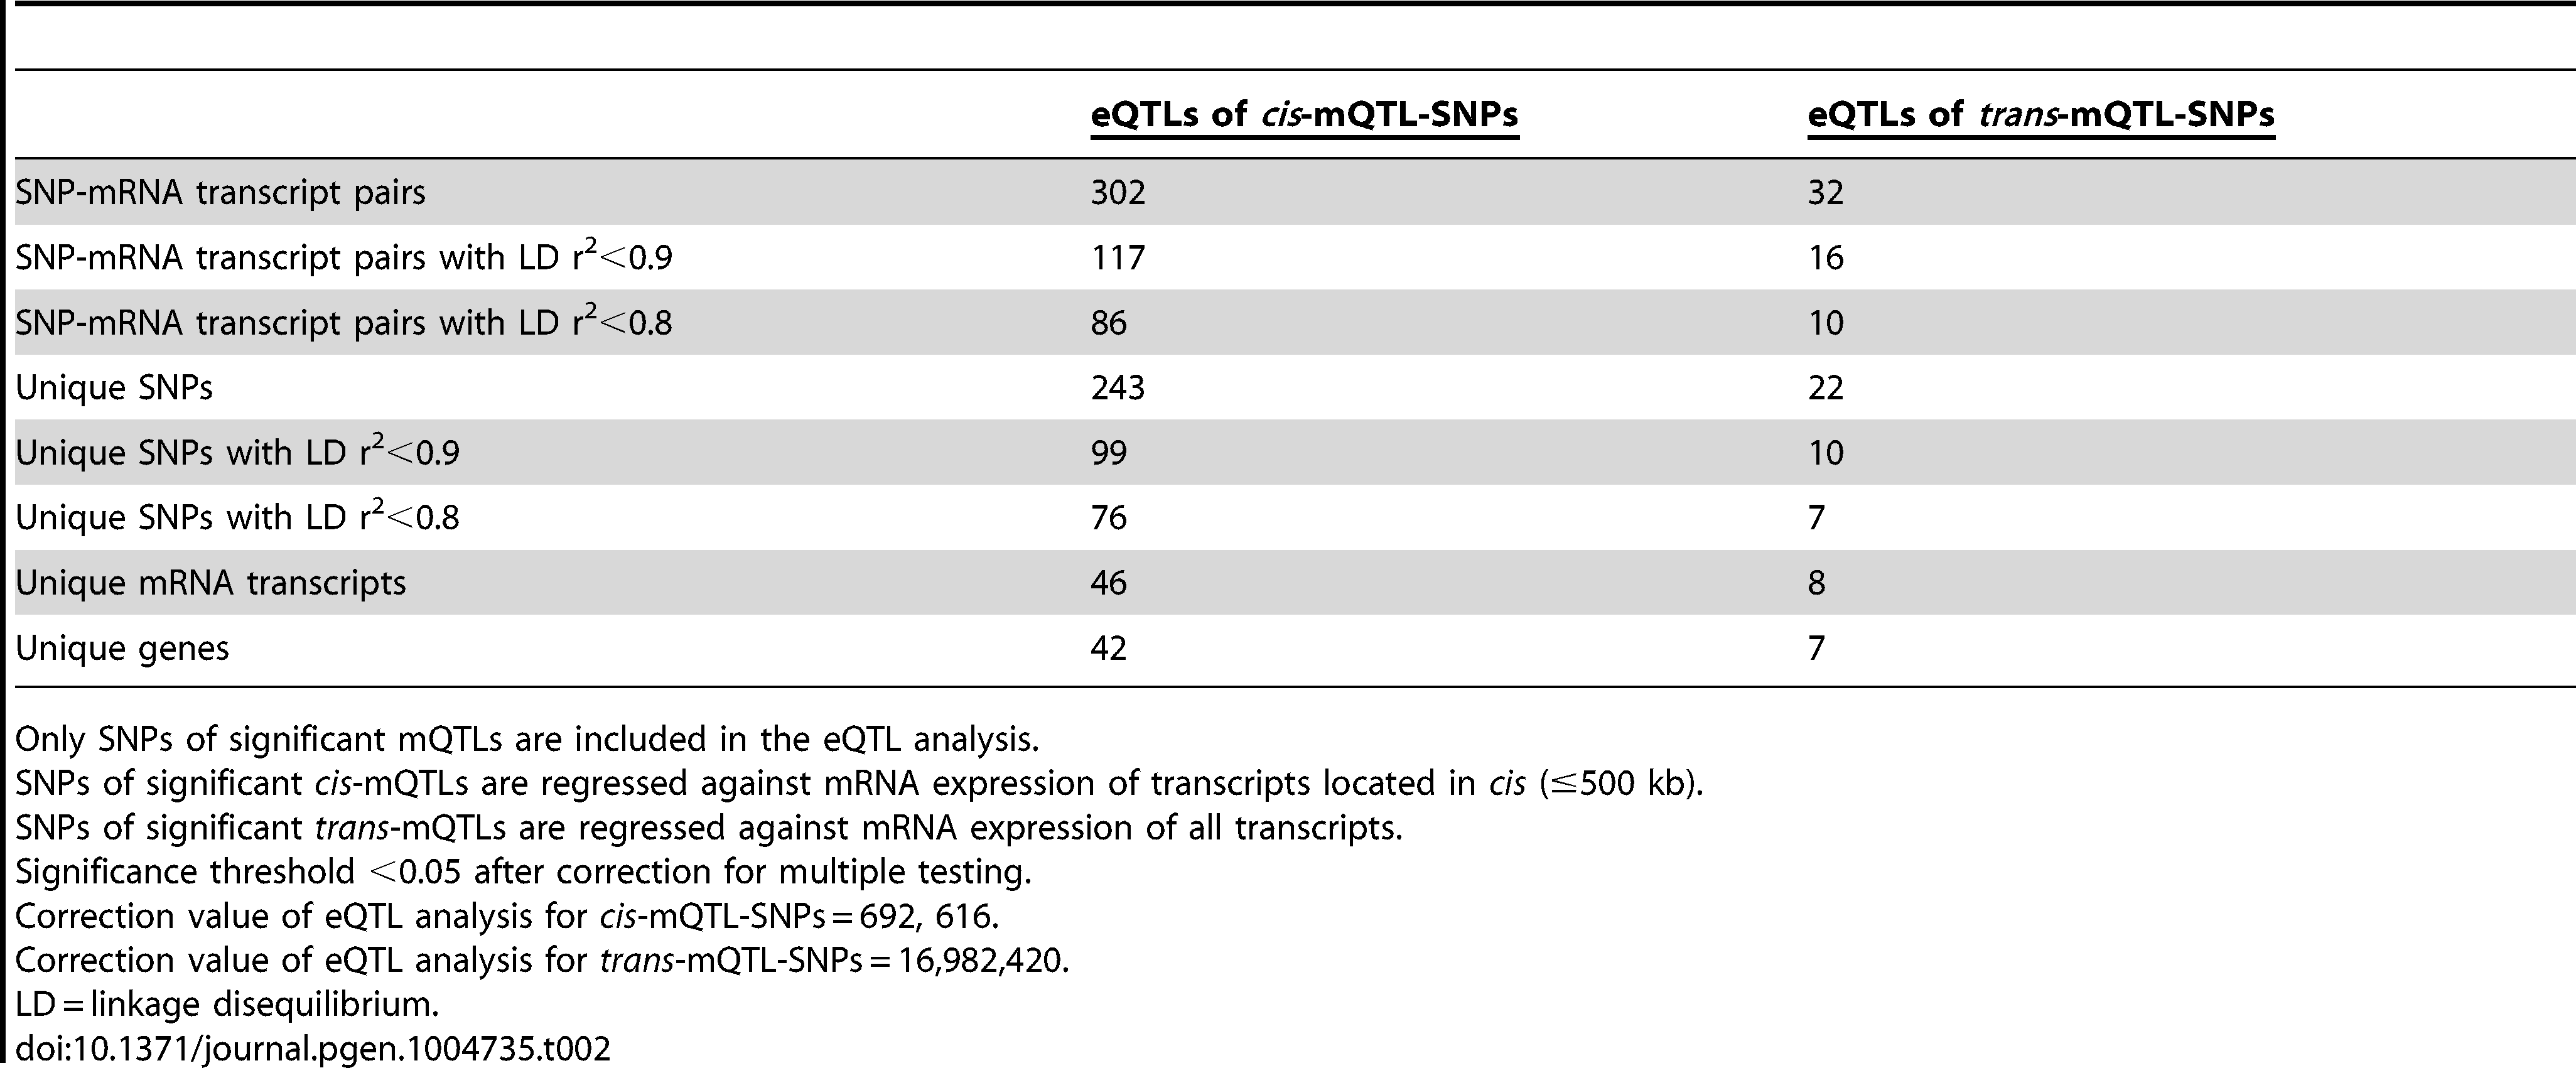 Number of significant eQTL results in the human pancreatic islets.